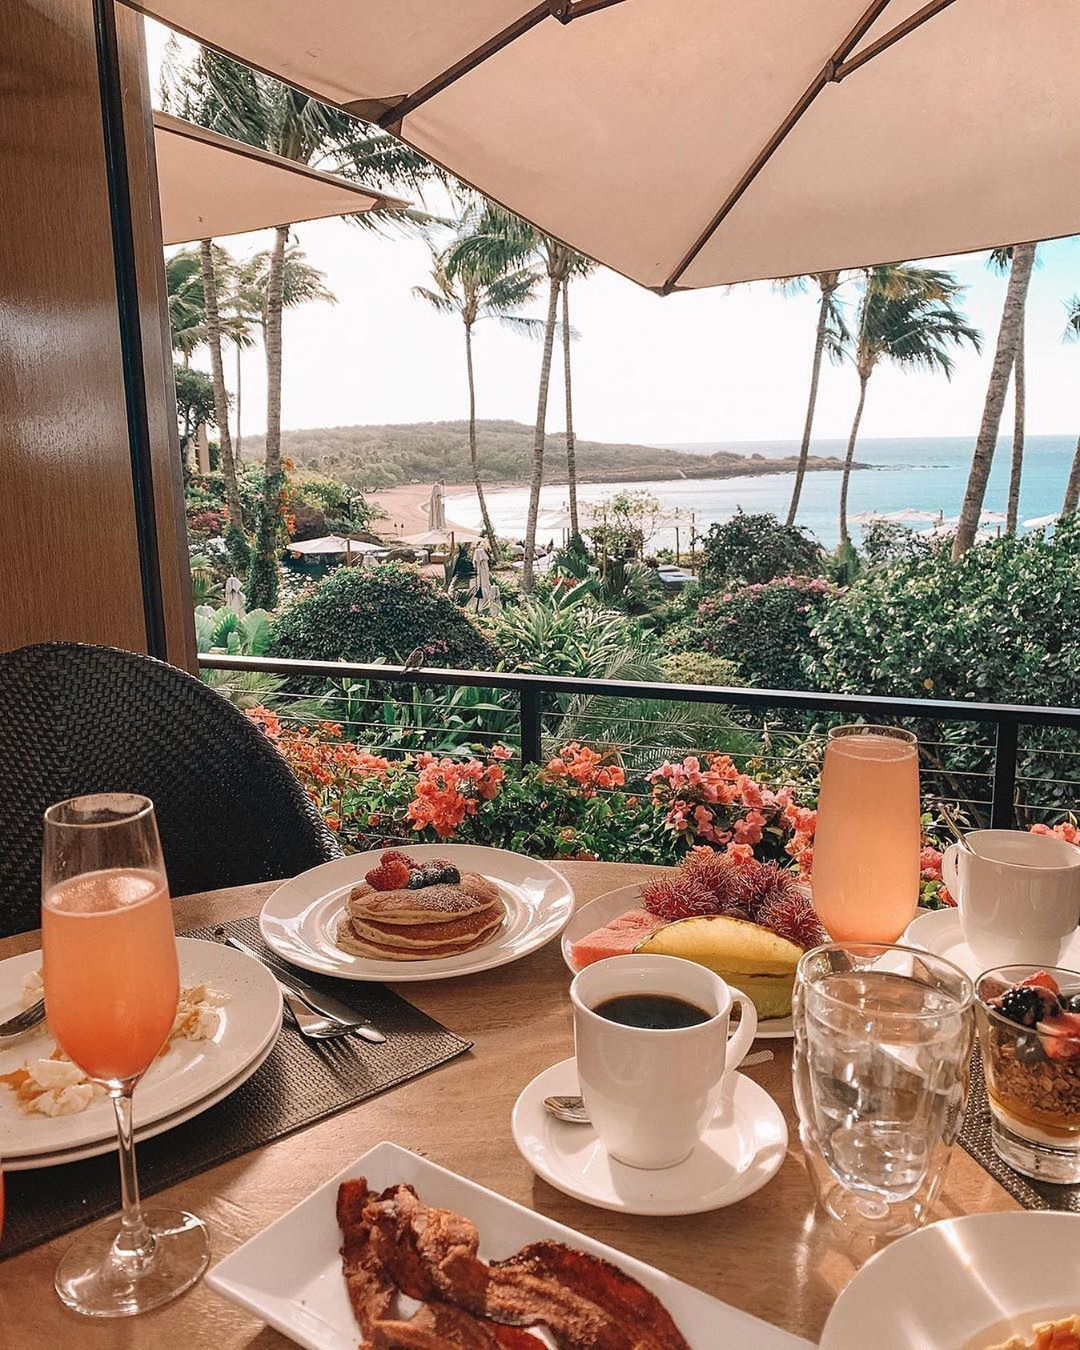 Breakfast In Hawaii By Smlx0 Breakfastwithaview Breakfast Around The World Breakfast In Bed Breakfast